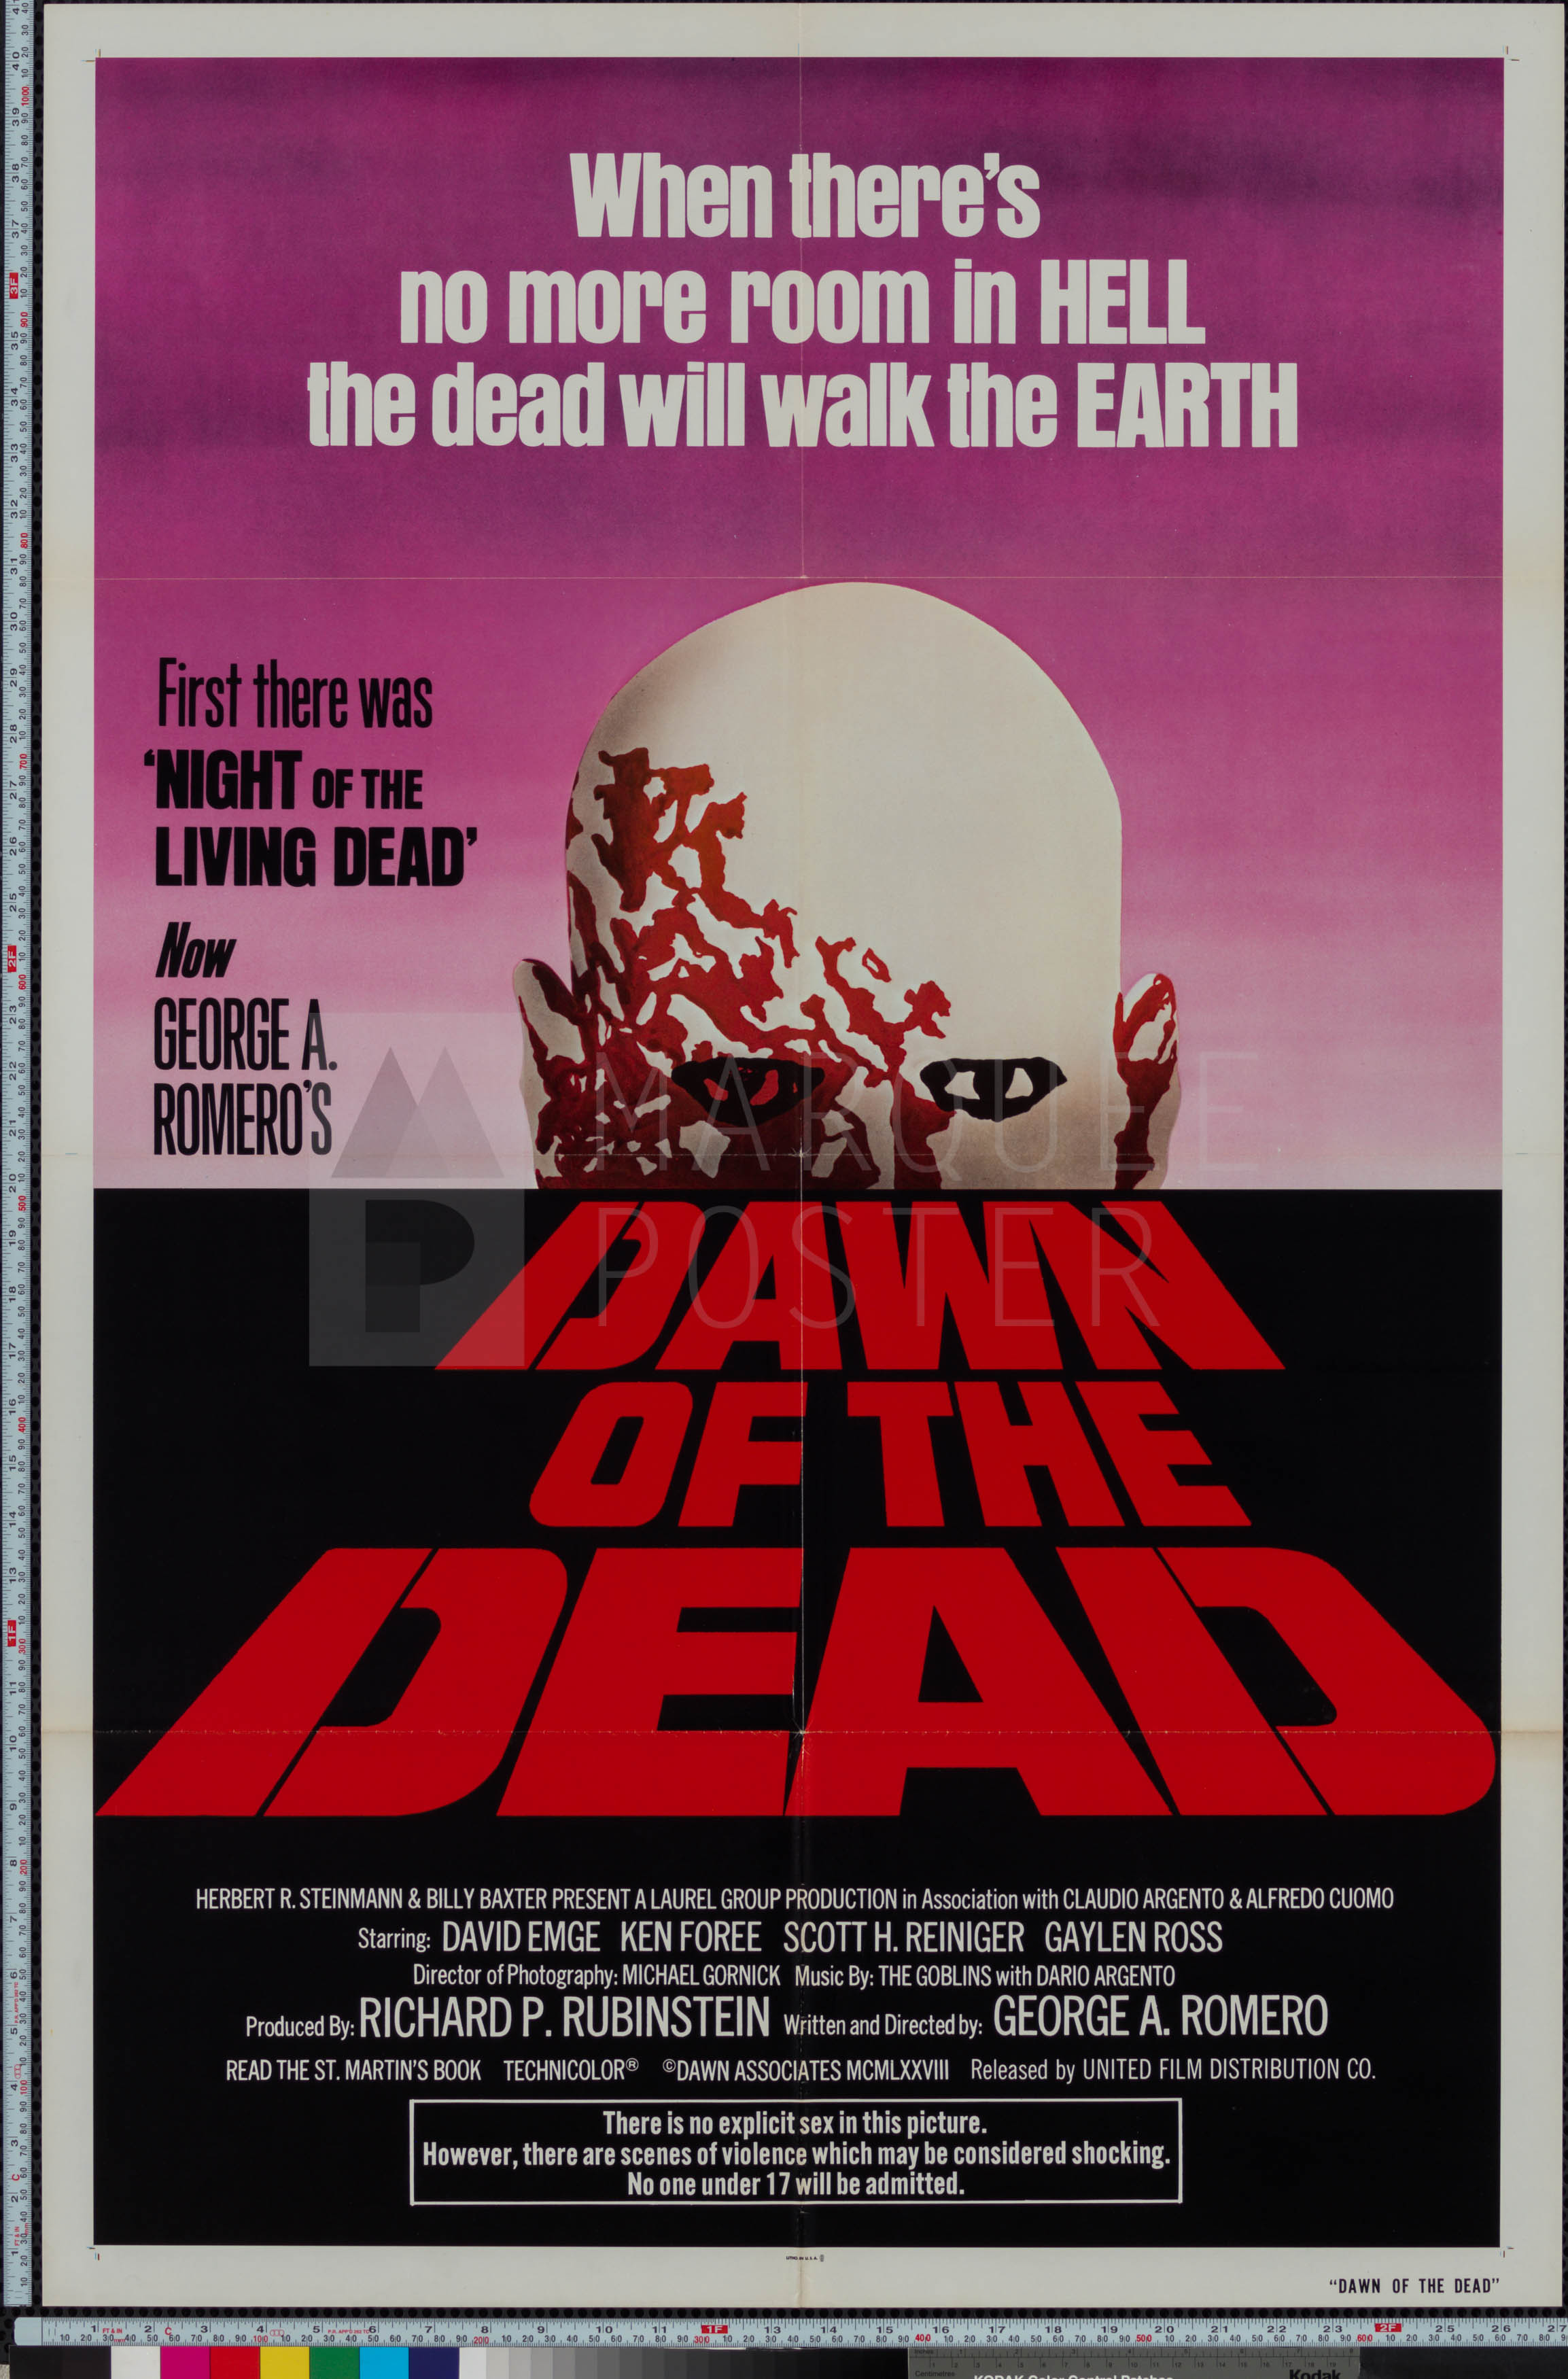 16-dawn-of-the-dead-red-title-style-us-1-sheet-1978-02